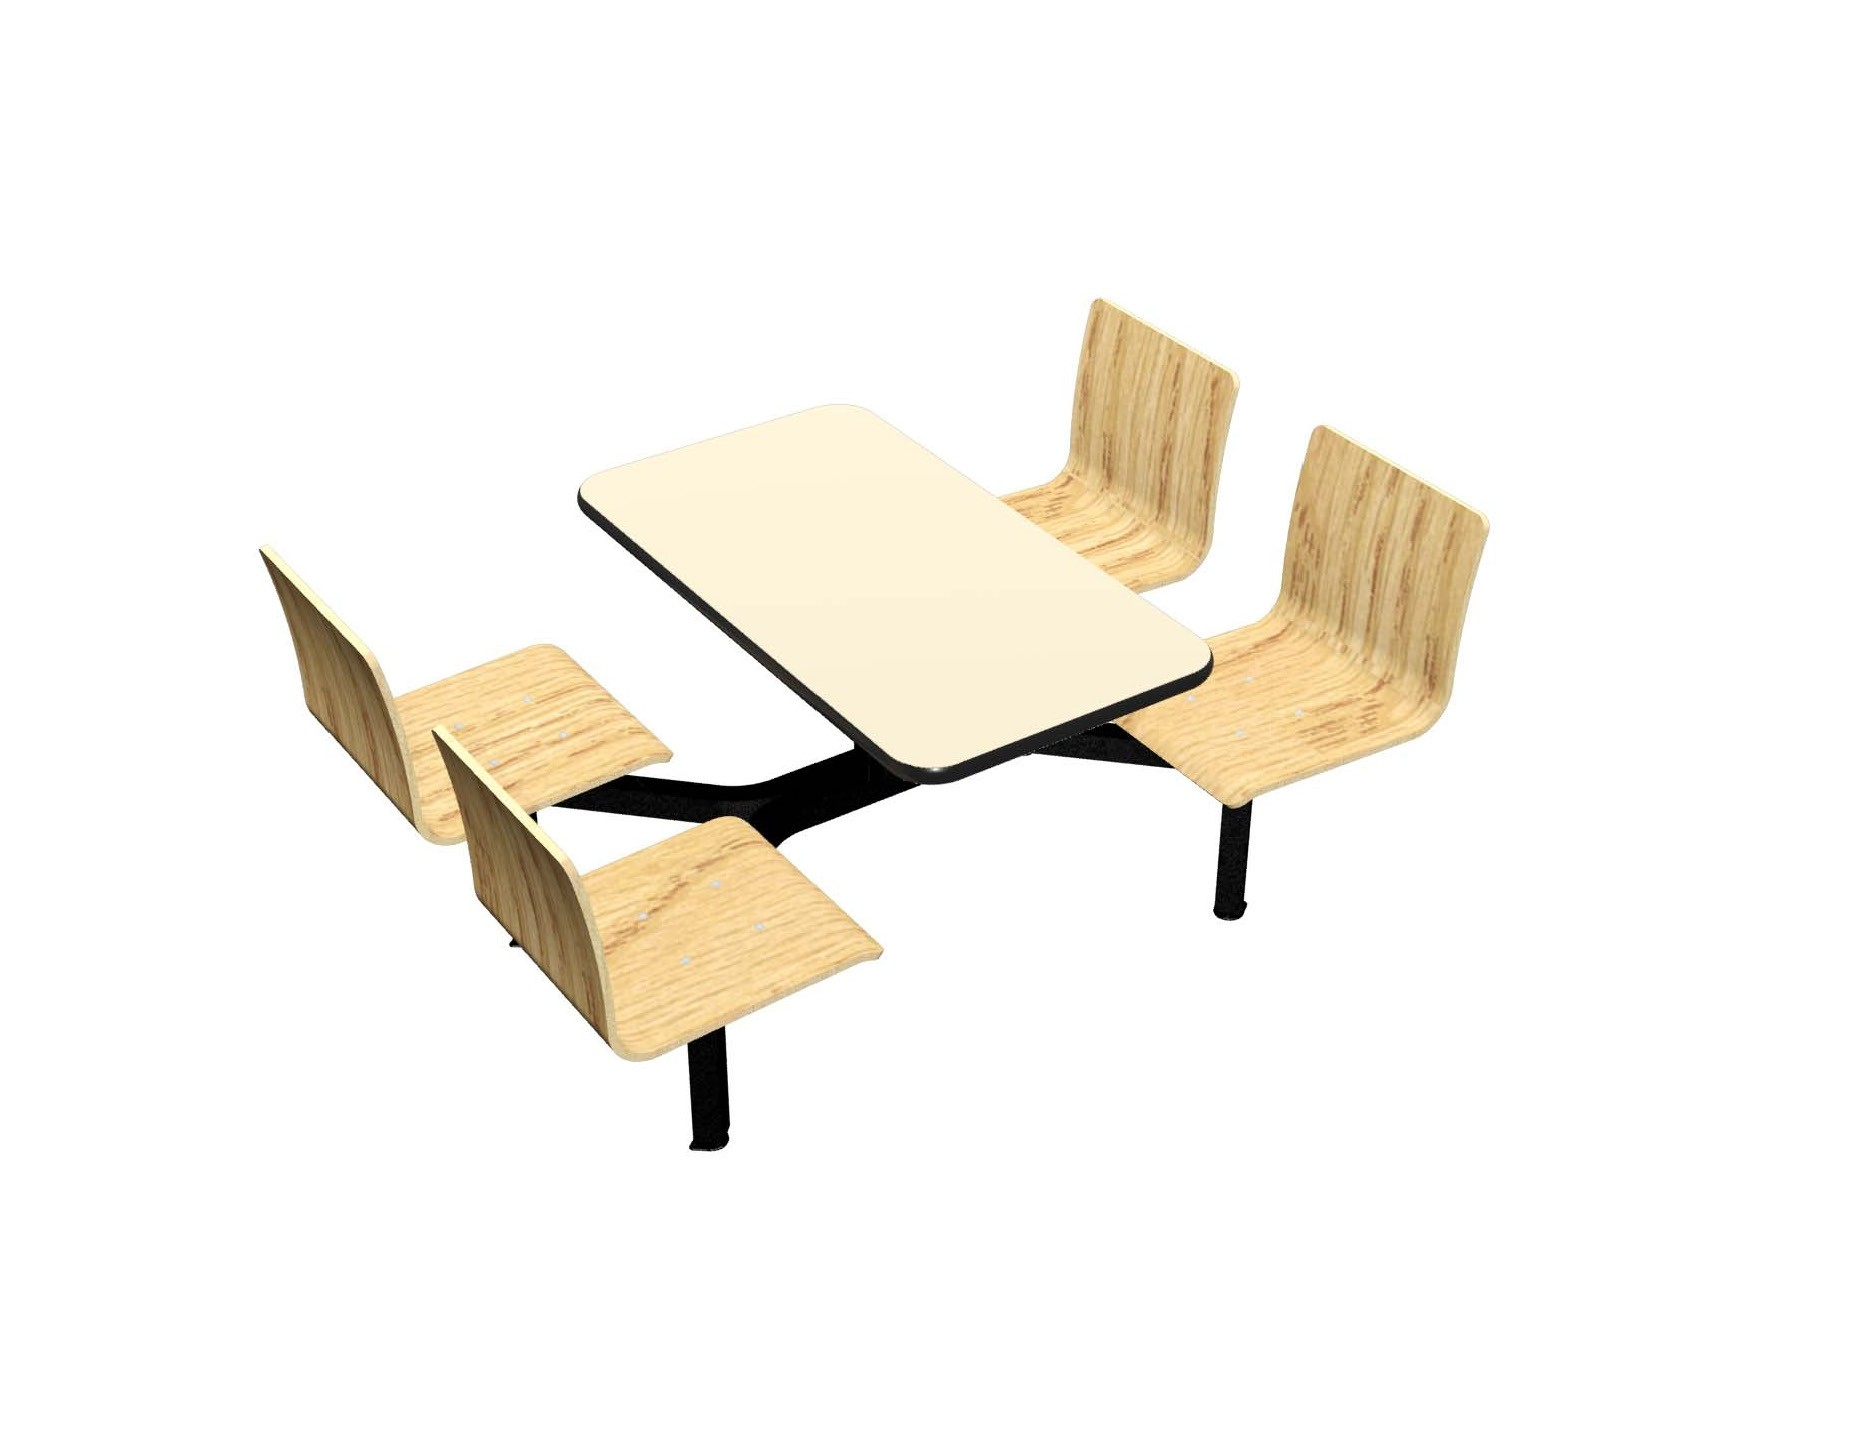 Wallaby laminate table, Black Dur-a-Edge®, Legacy chairhead in Natural Oak laminate